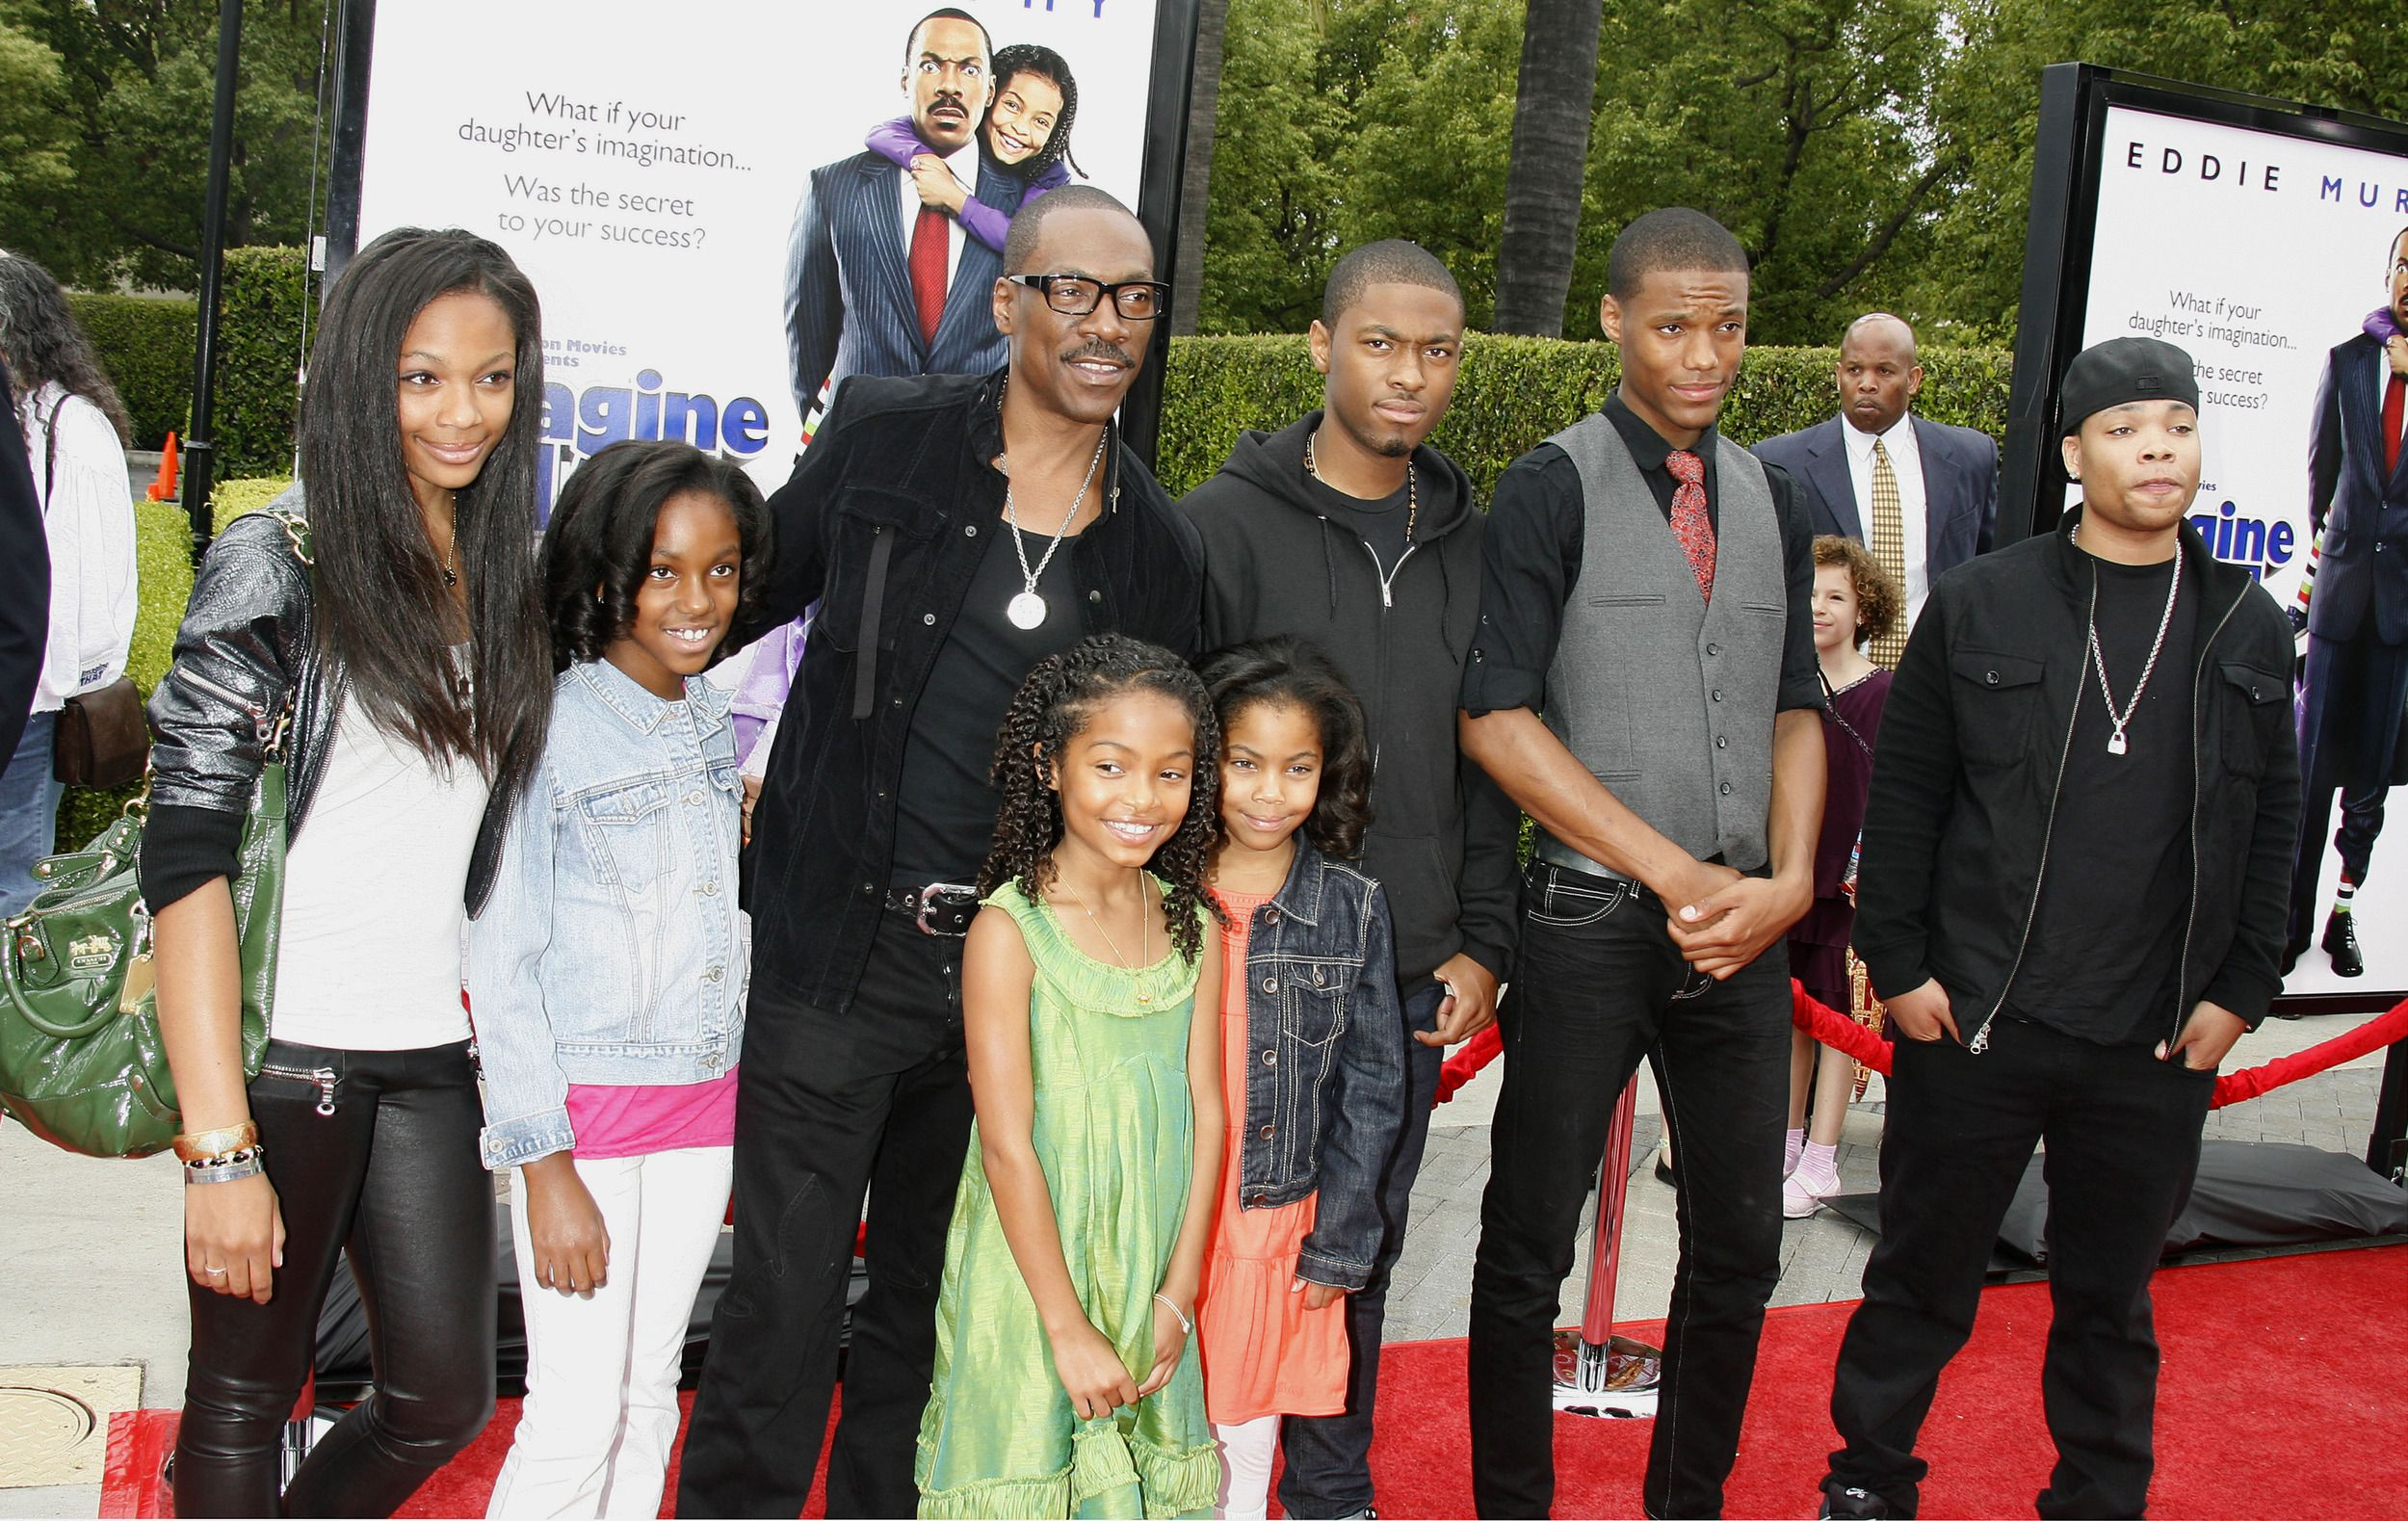 Top 20 Celebrities With the Most Kids